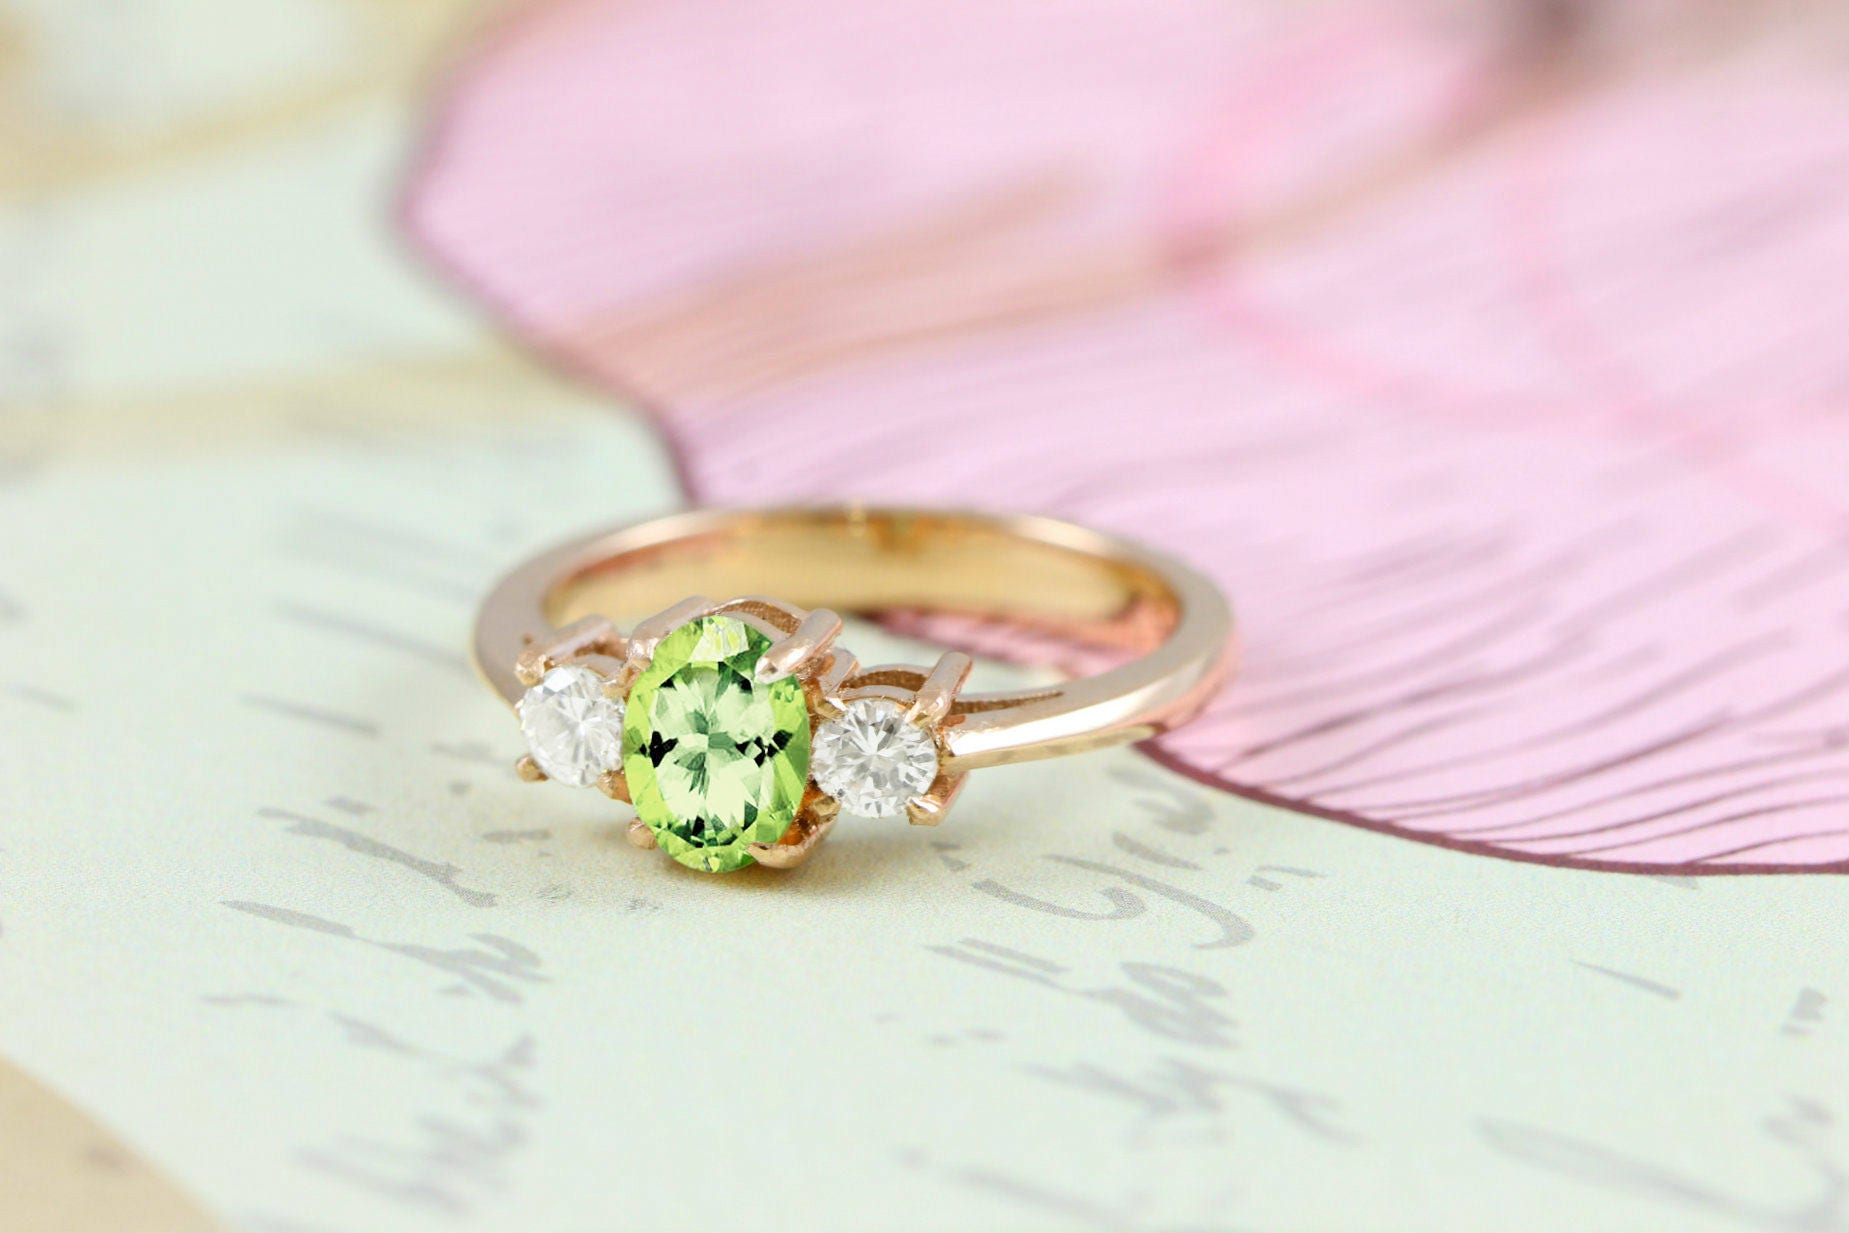 Peridot and Diamond engagement ring in 14 carat gold for her